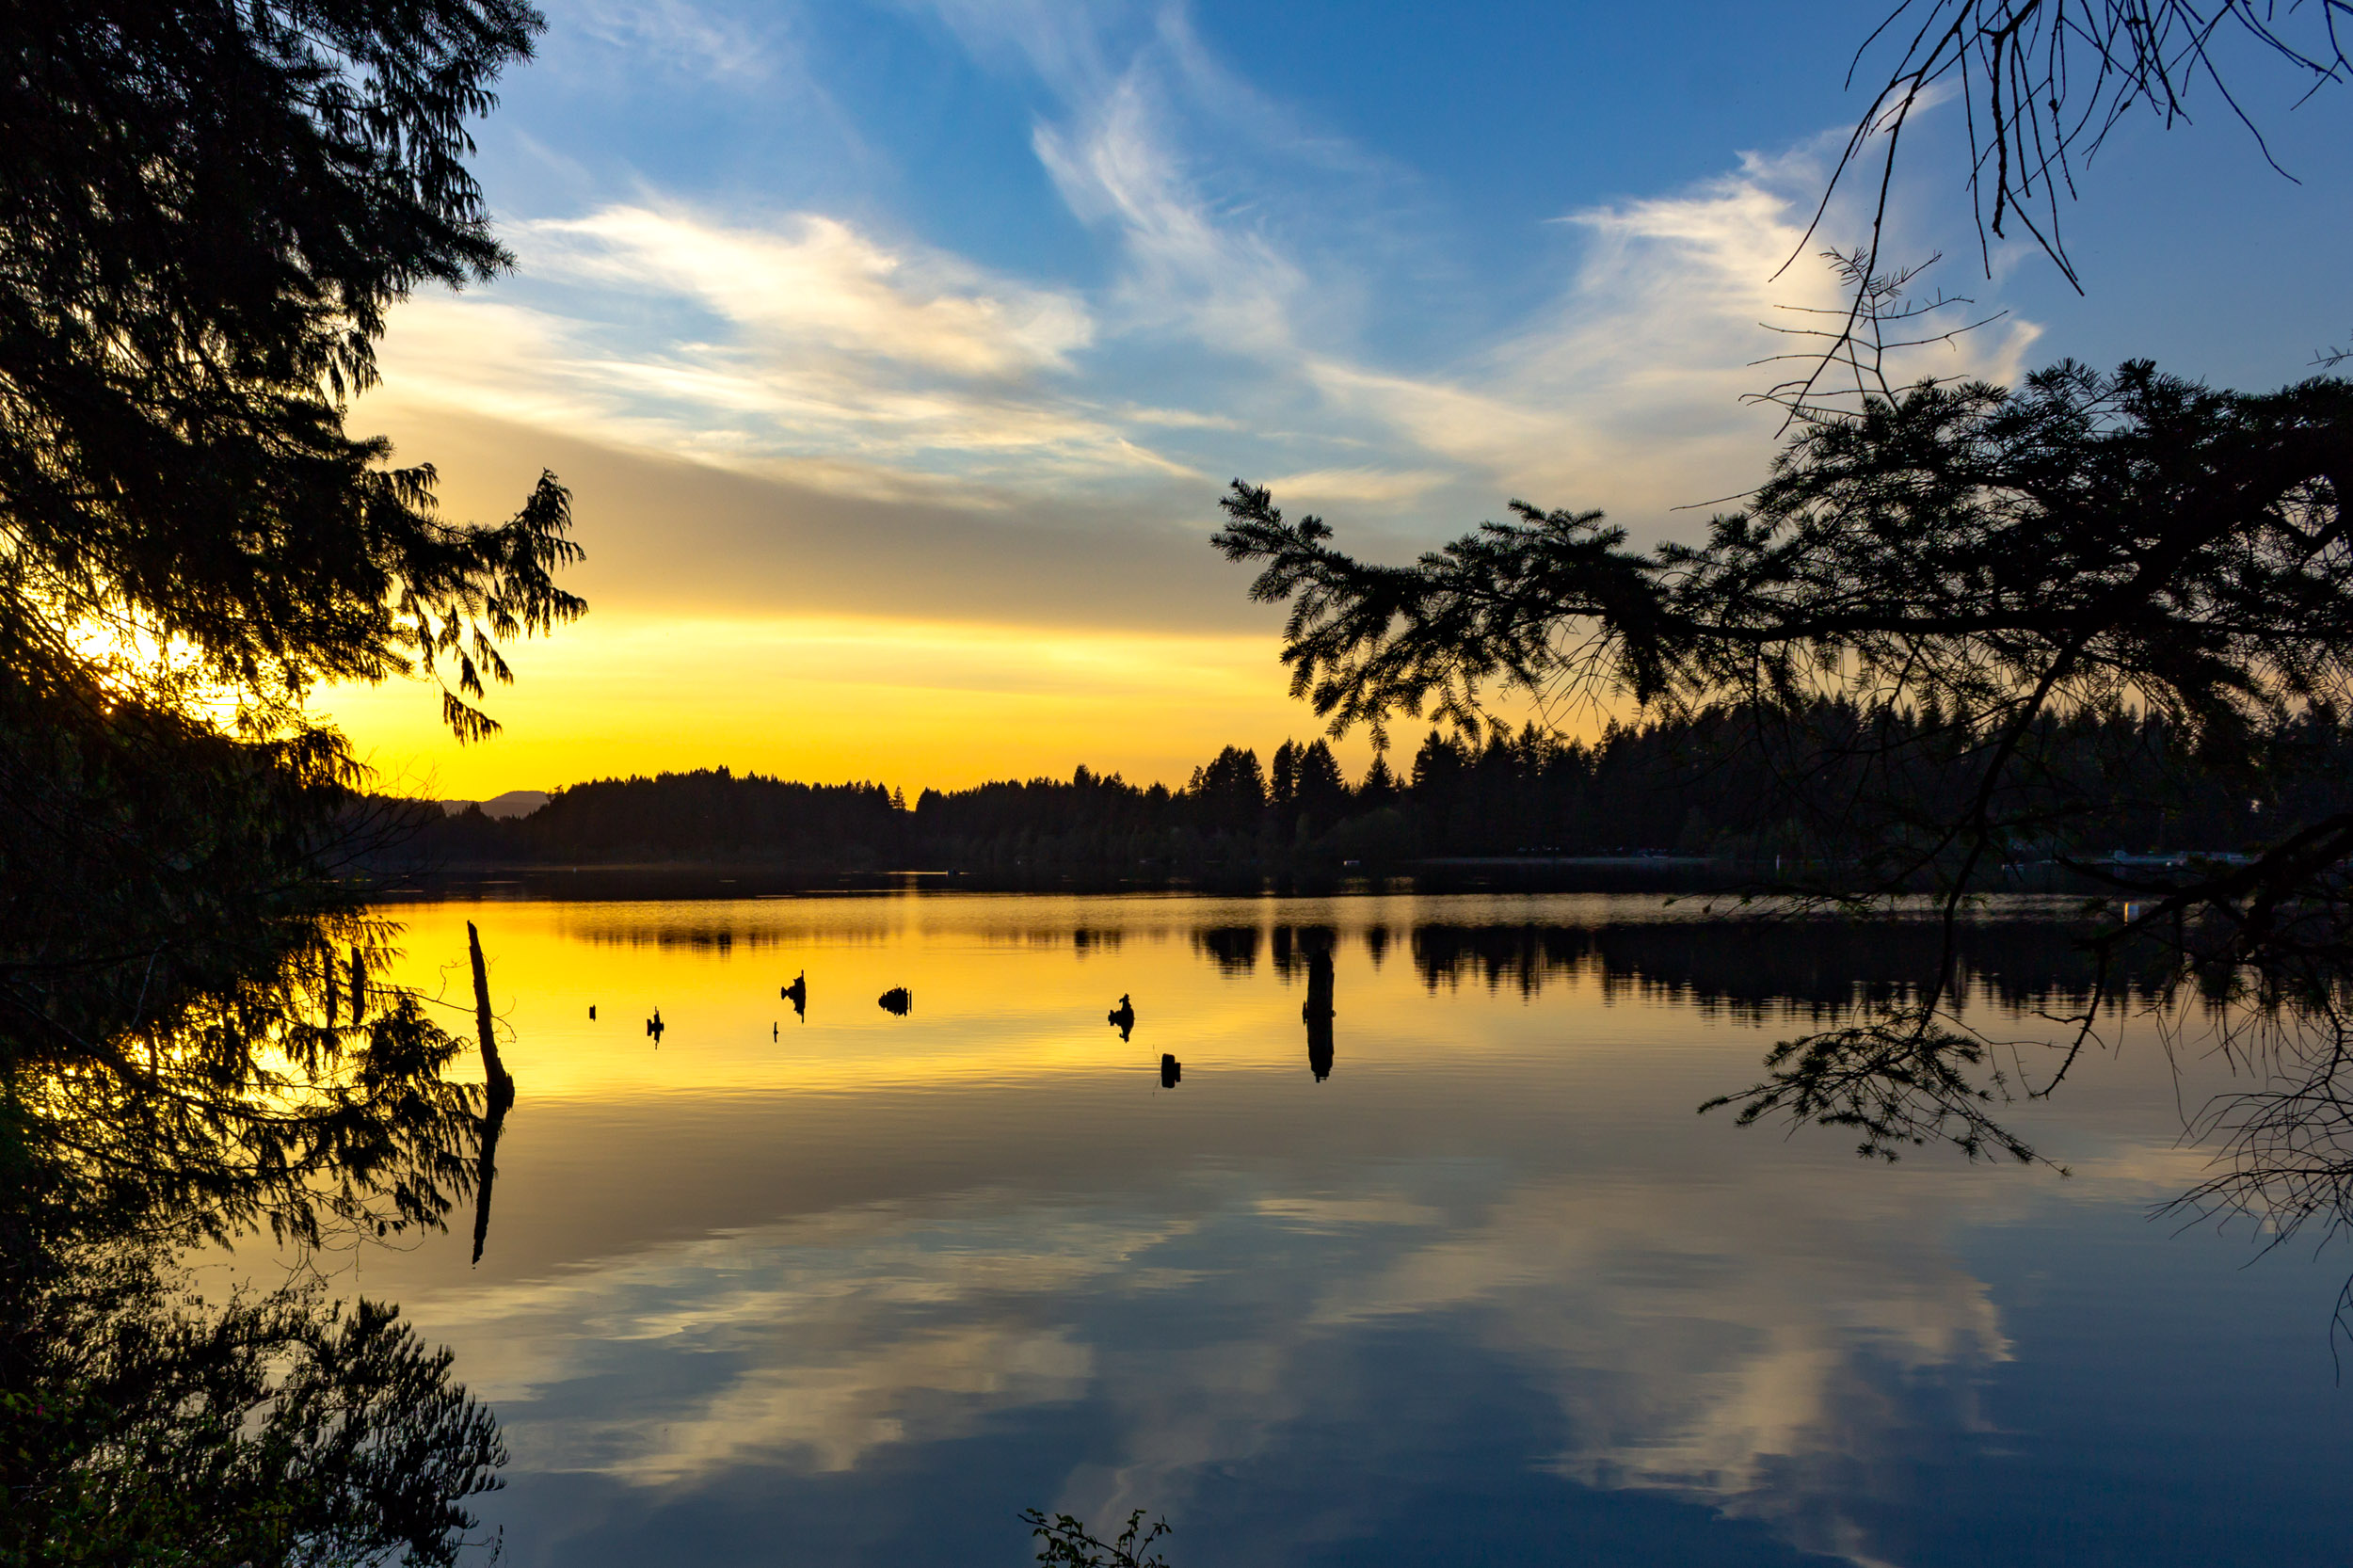 Sunset at Westwood Lake - Nanaimo, BC  Copyright © Afro Boy Productions. All rights reserved.